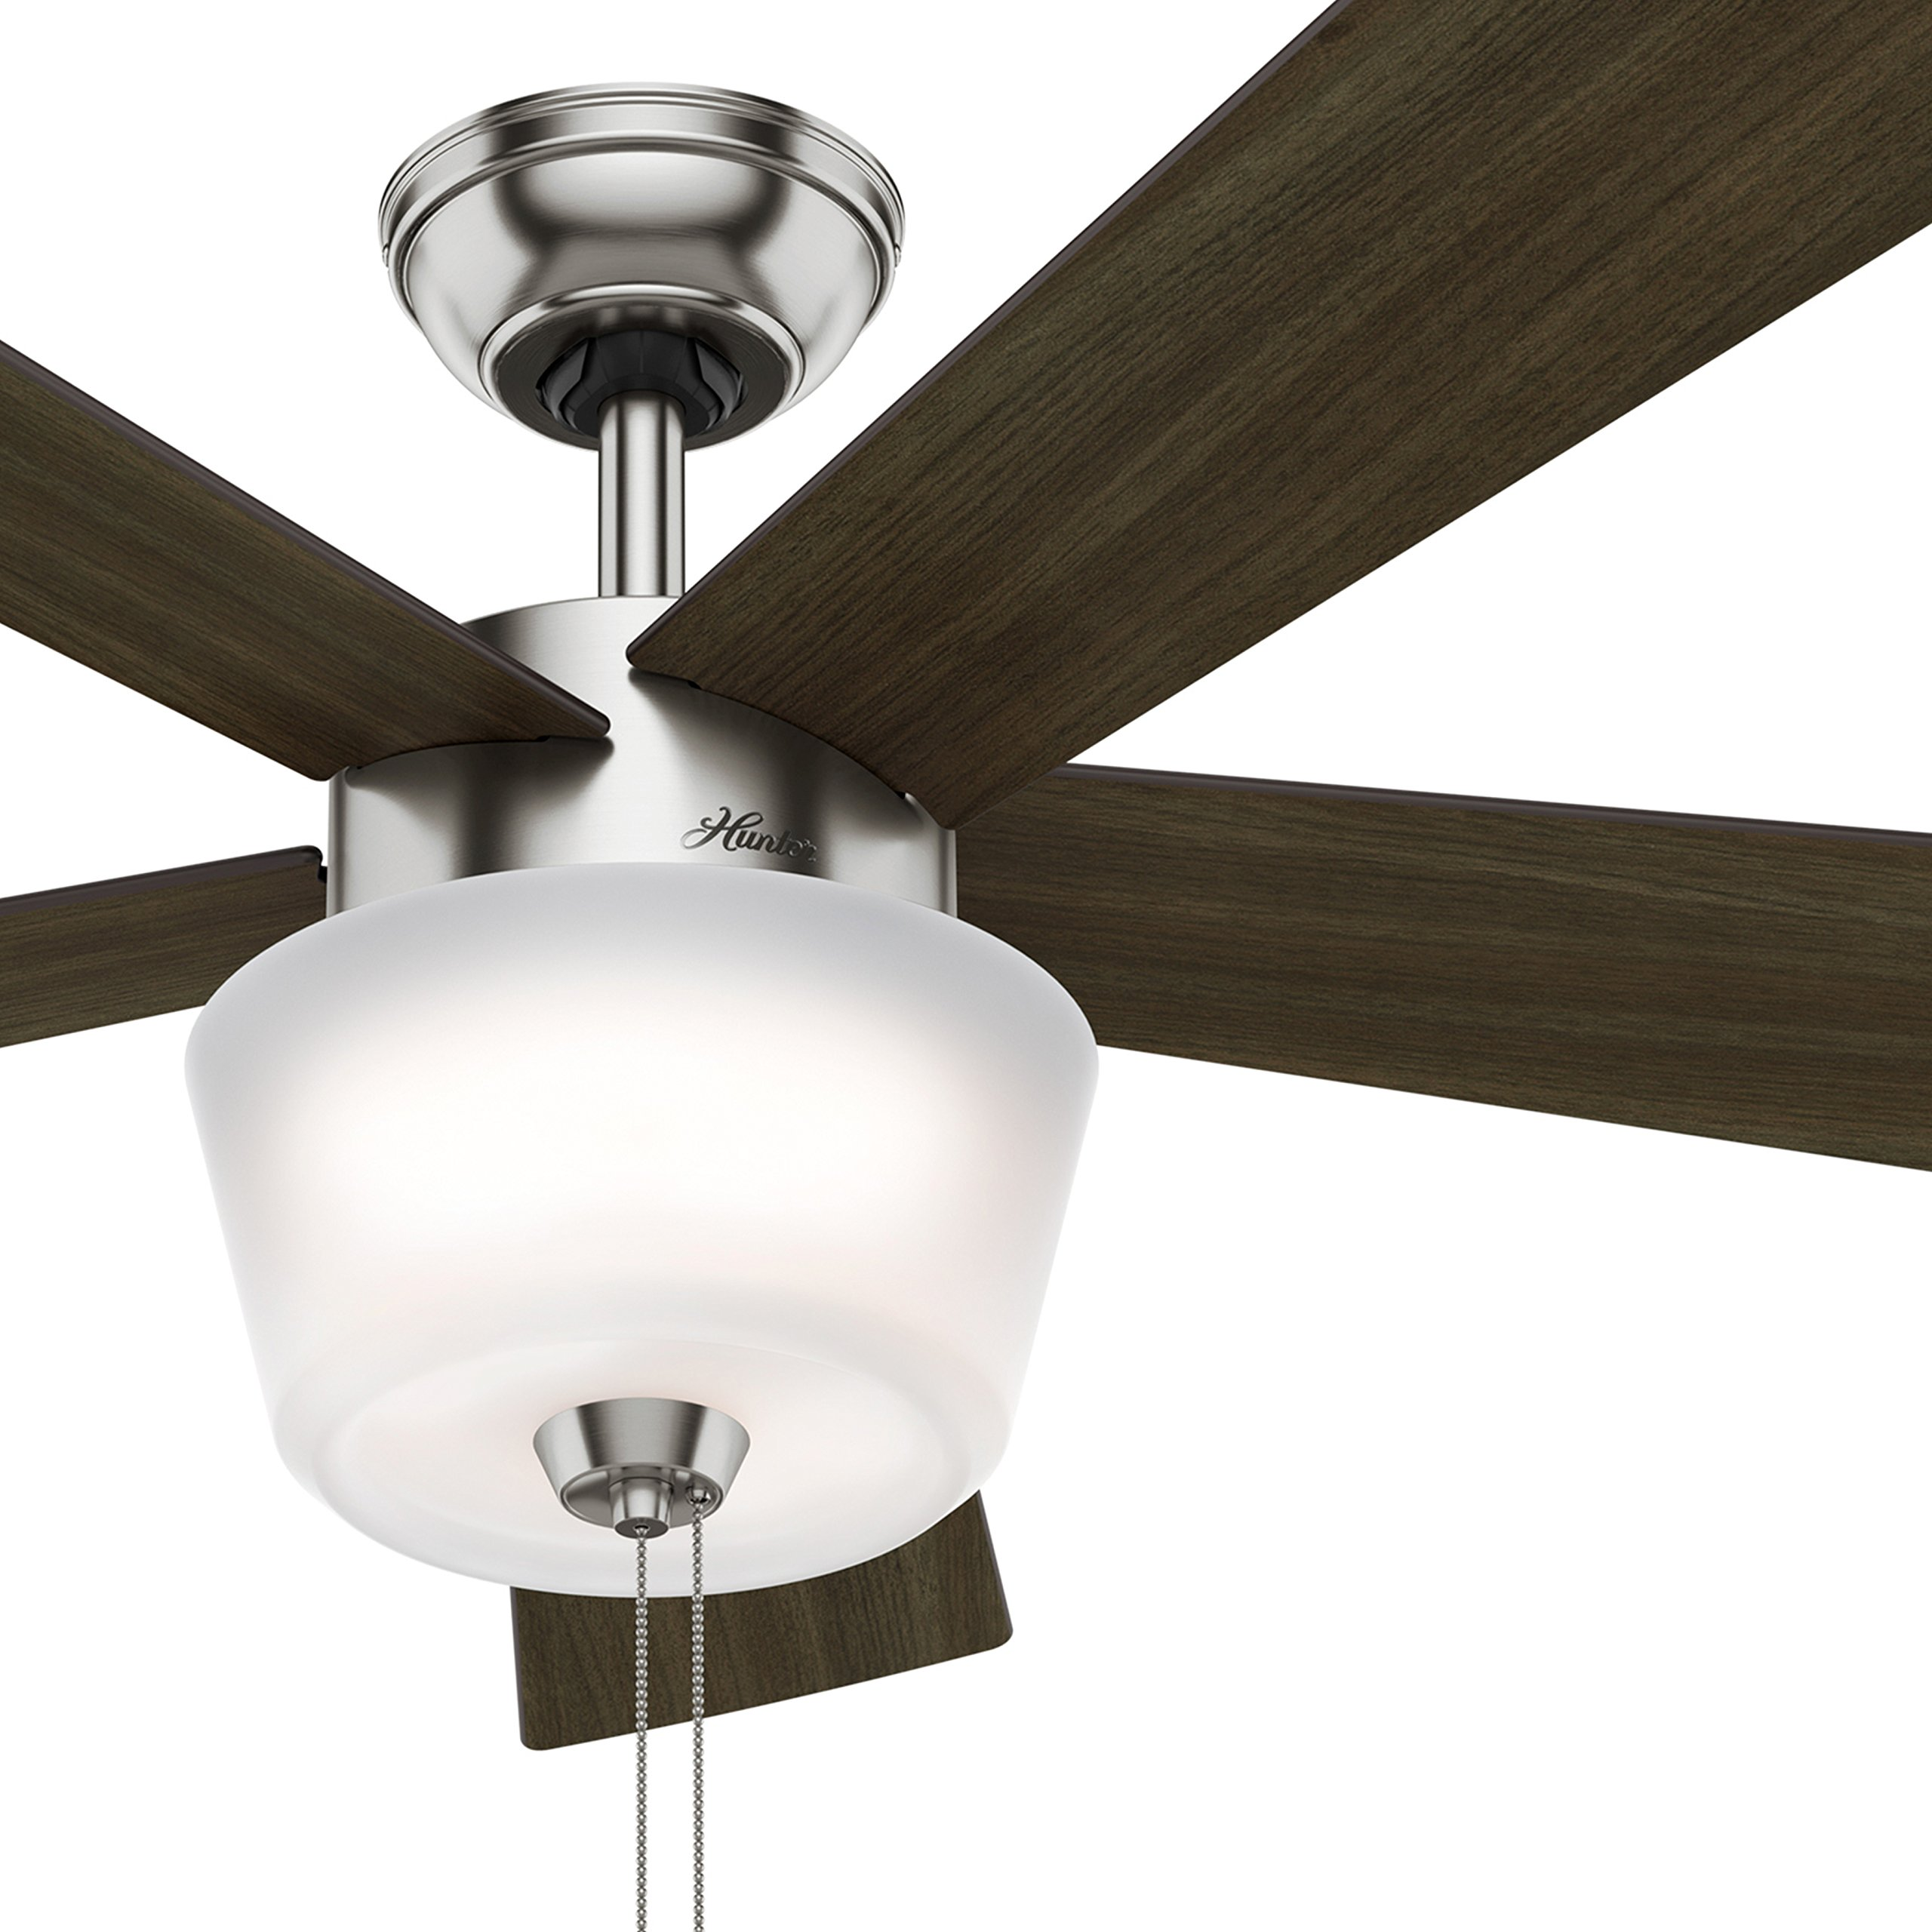 Hunter Fan 52'' Contemporary Ceiling Fan with Bowl Light Kit, Brushed Nickel (Certified Refurbished)